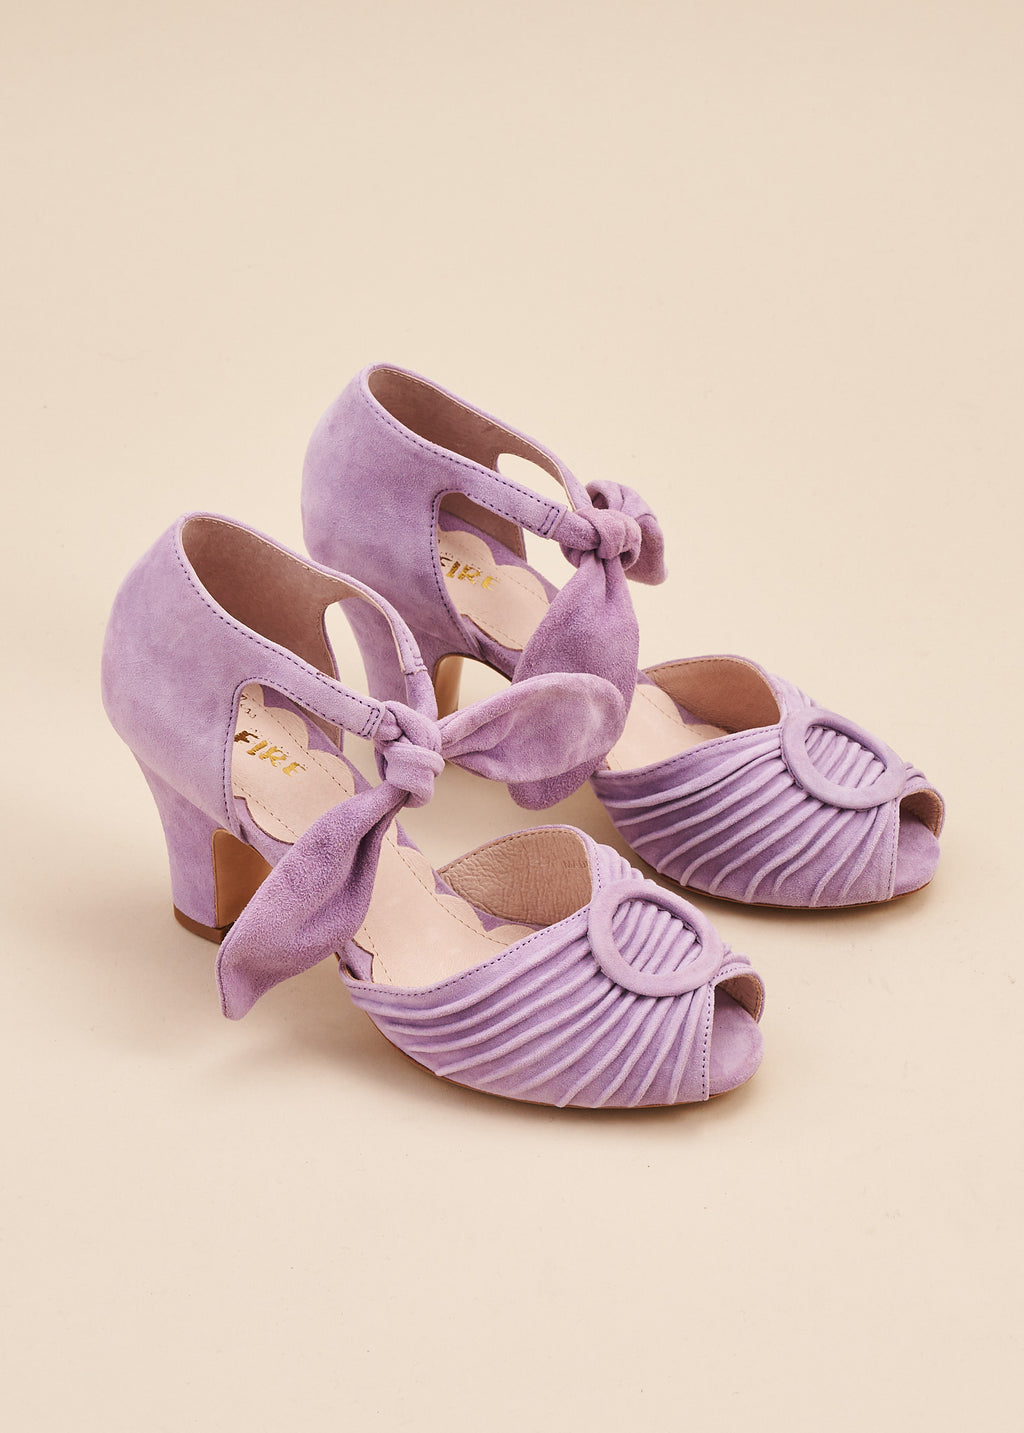 Loretta in soft pastel lilac suede by Miss L Fire is a vintage inspired peep toe sandal with 8cm heel and soft ankle tie straps. Vamp features delicate pleating and covered buckle detail. Perfect Bridal shoe.